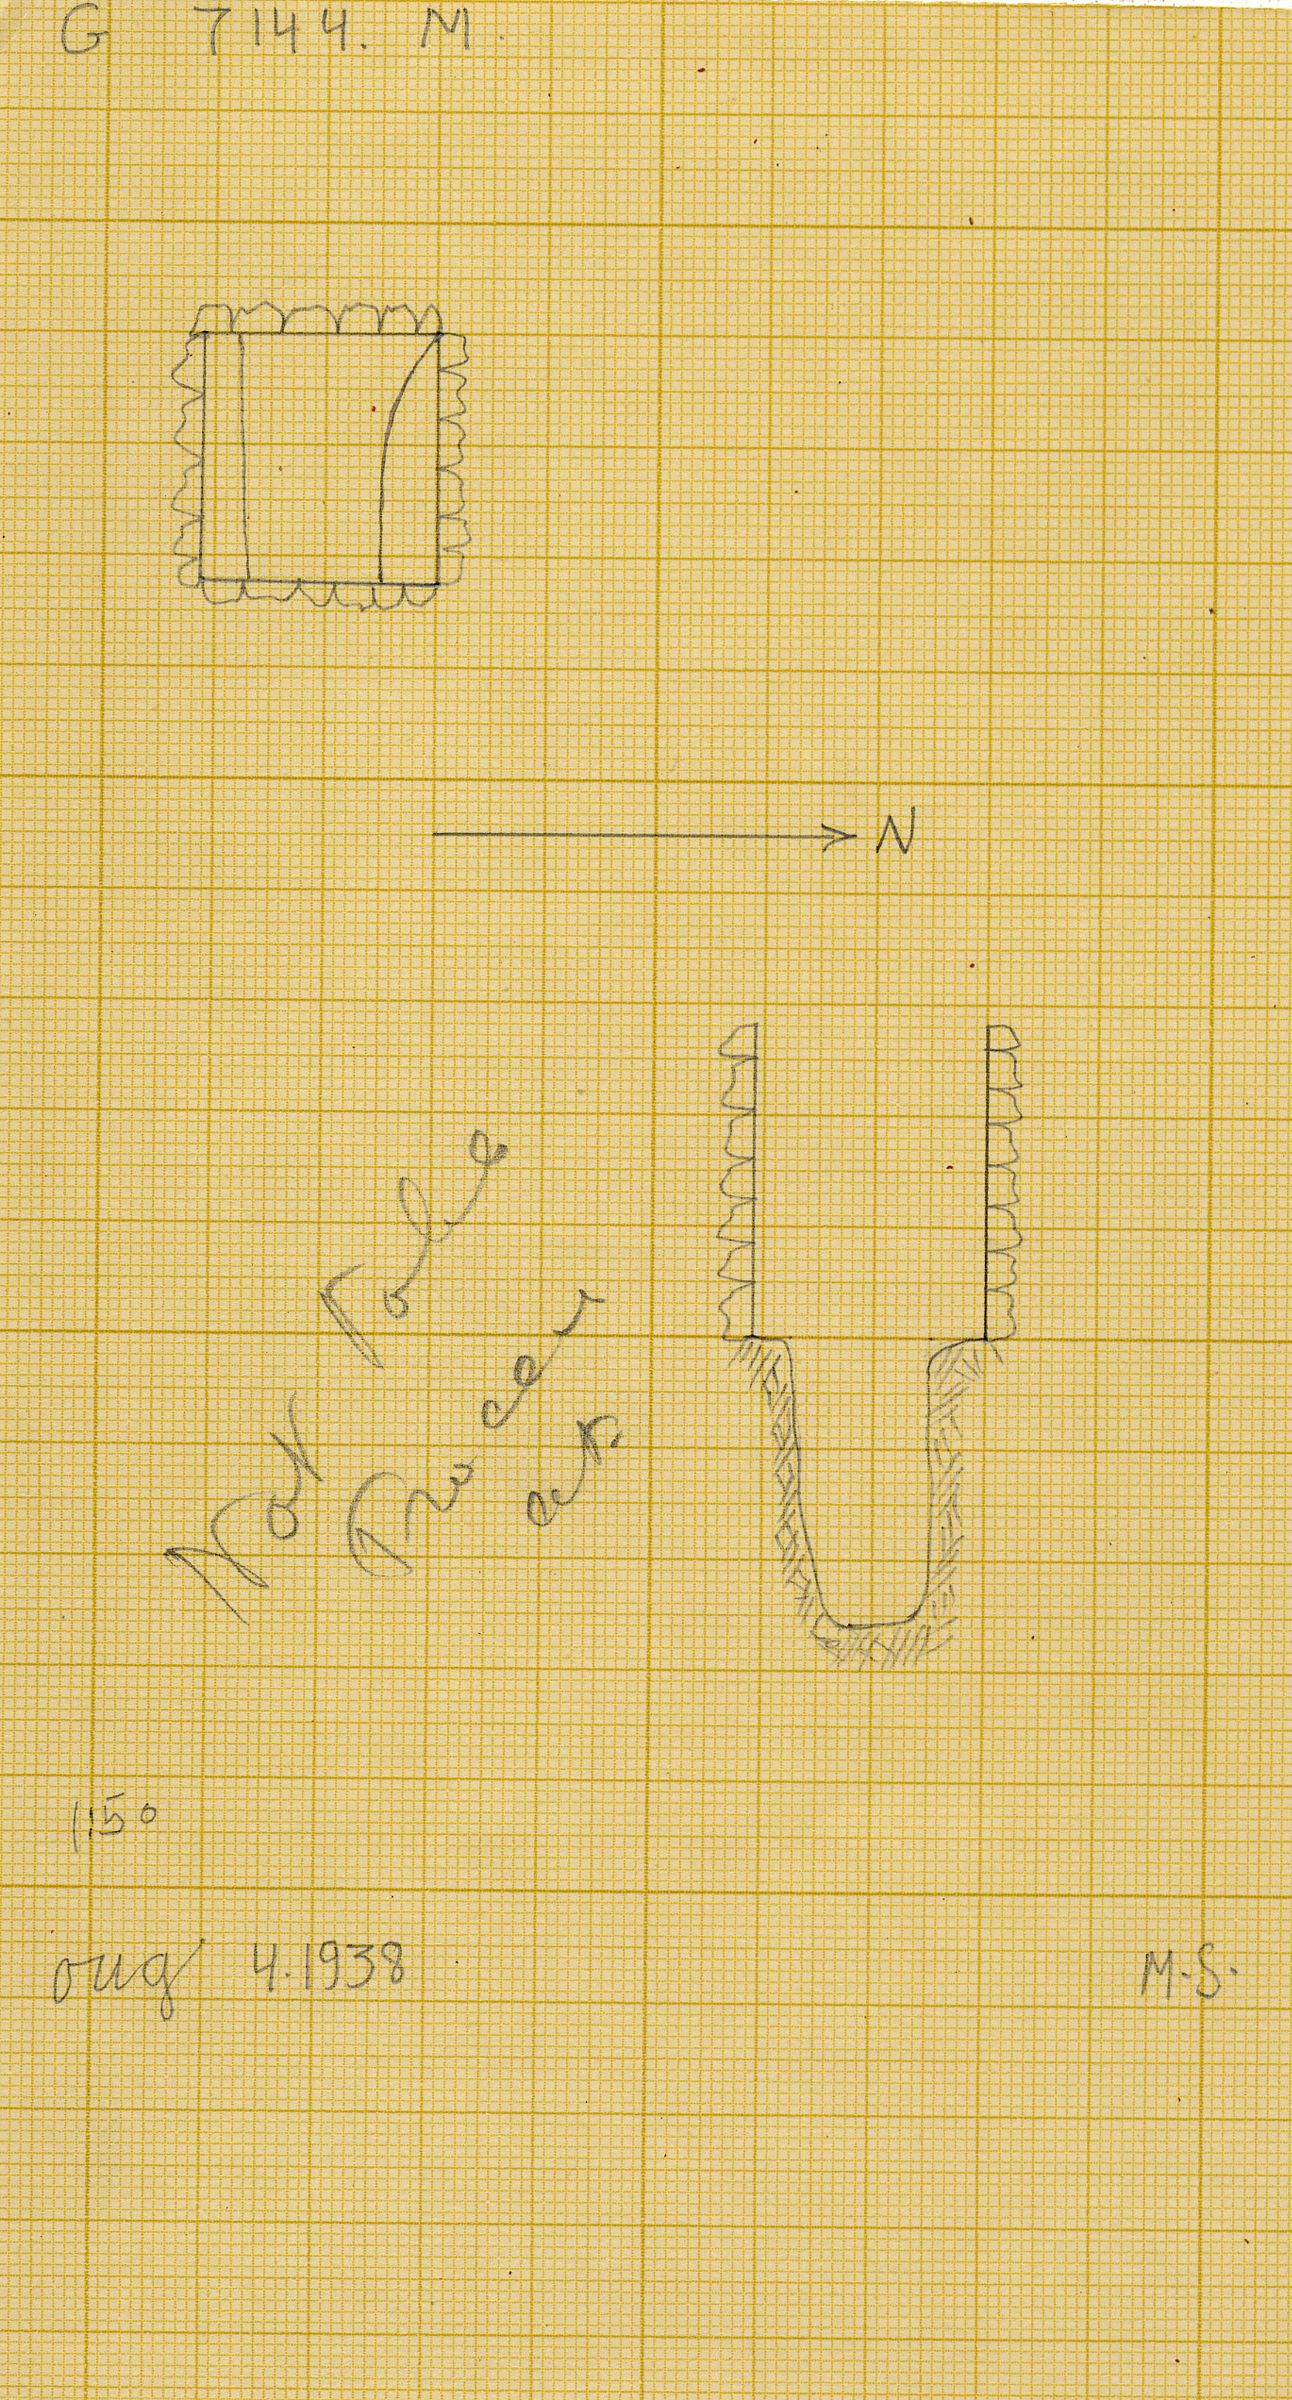 Maps and plans: G 7144, Shaft M